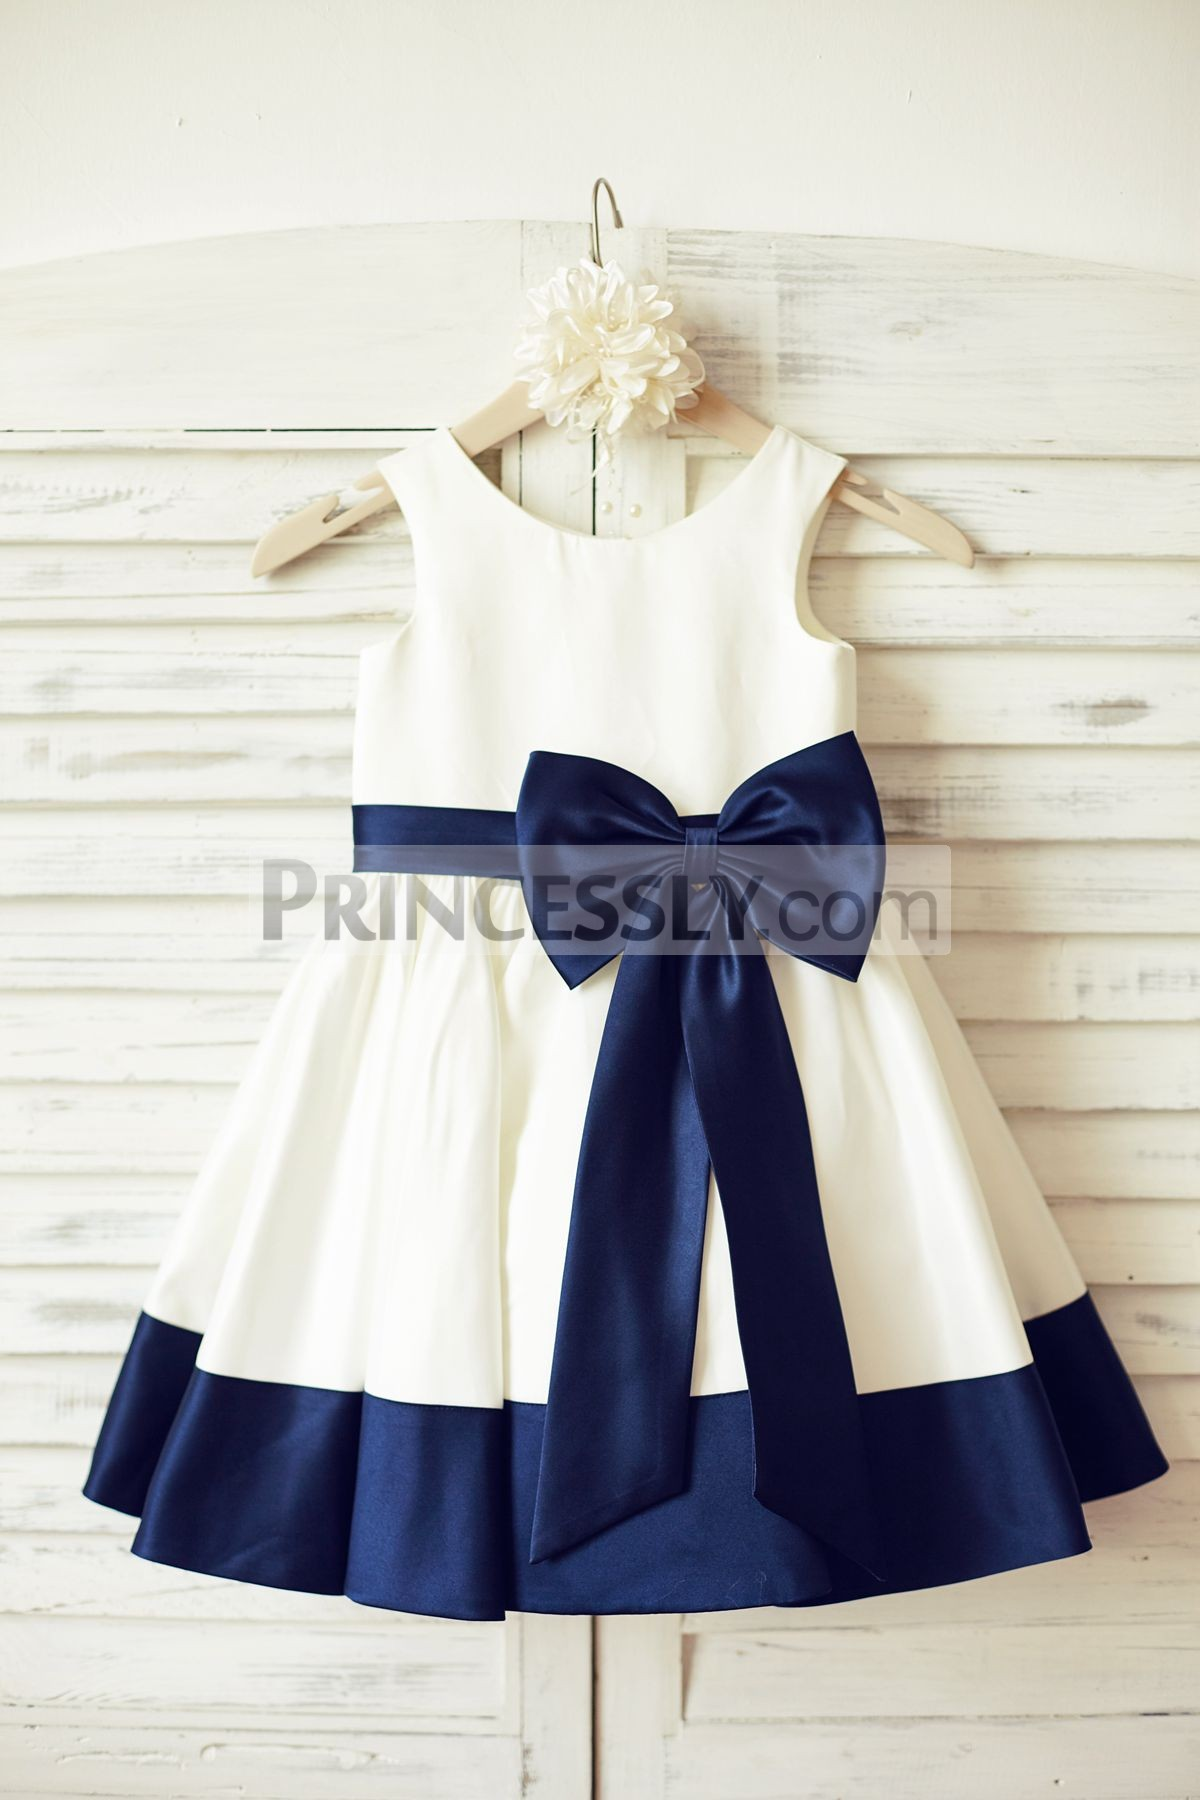 Princessly.com-K1000160-Ivory Satin Flower Girl Dress with navy blue belt/bow-31